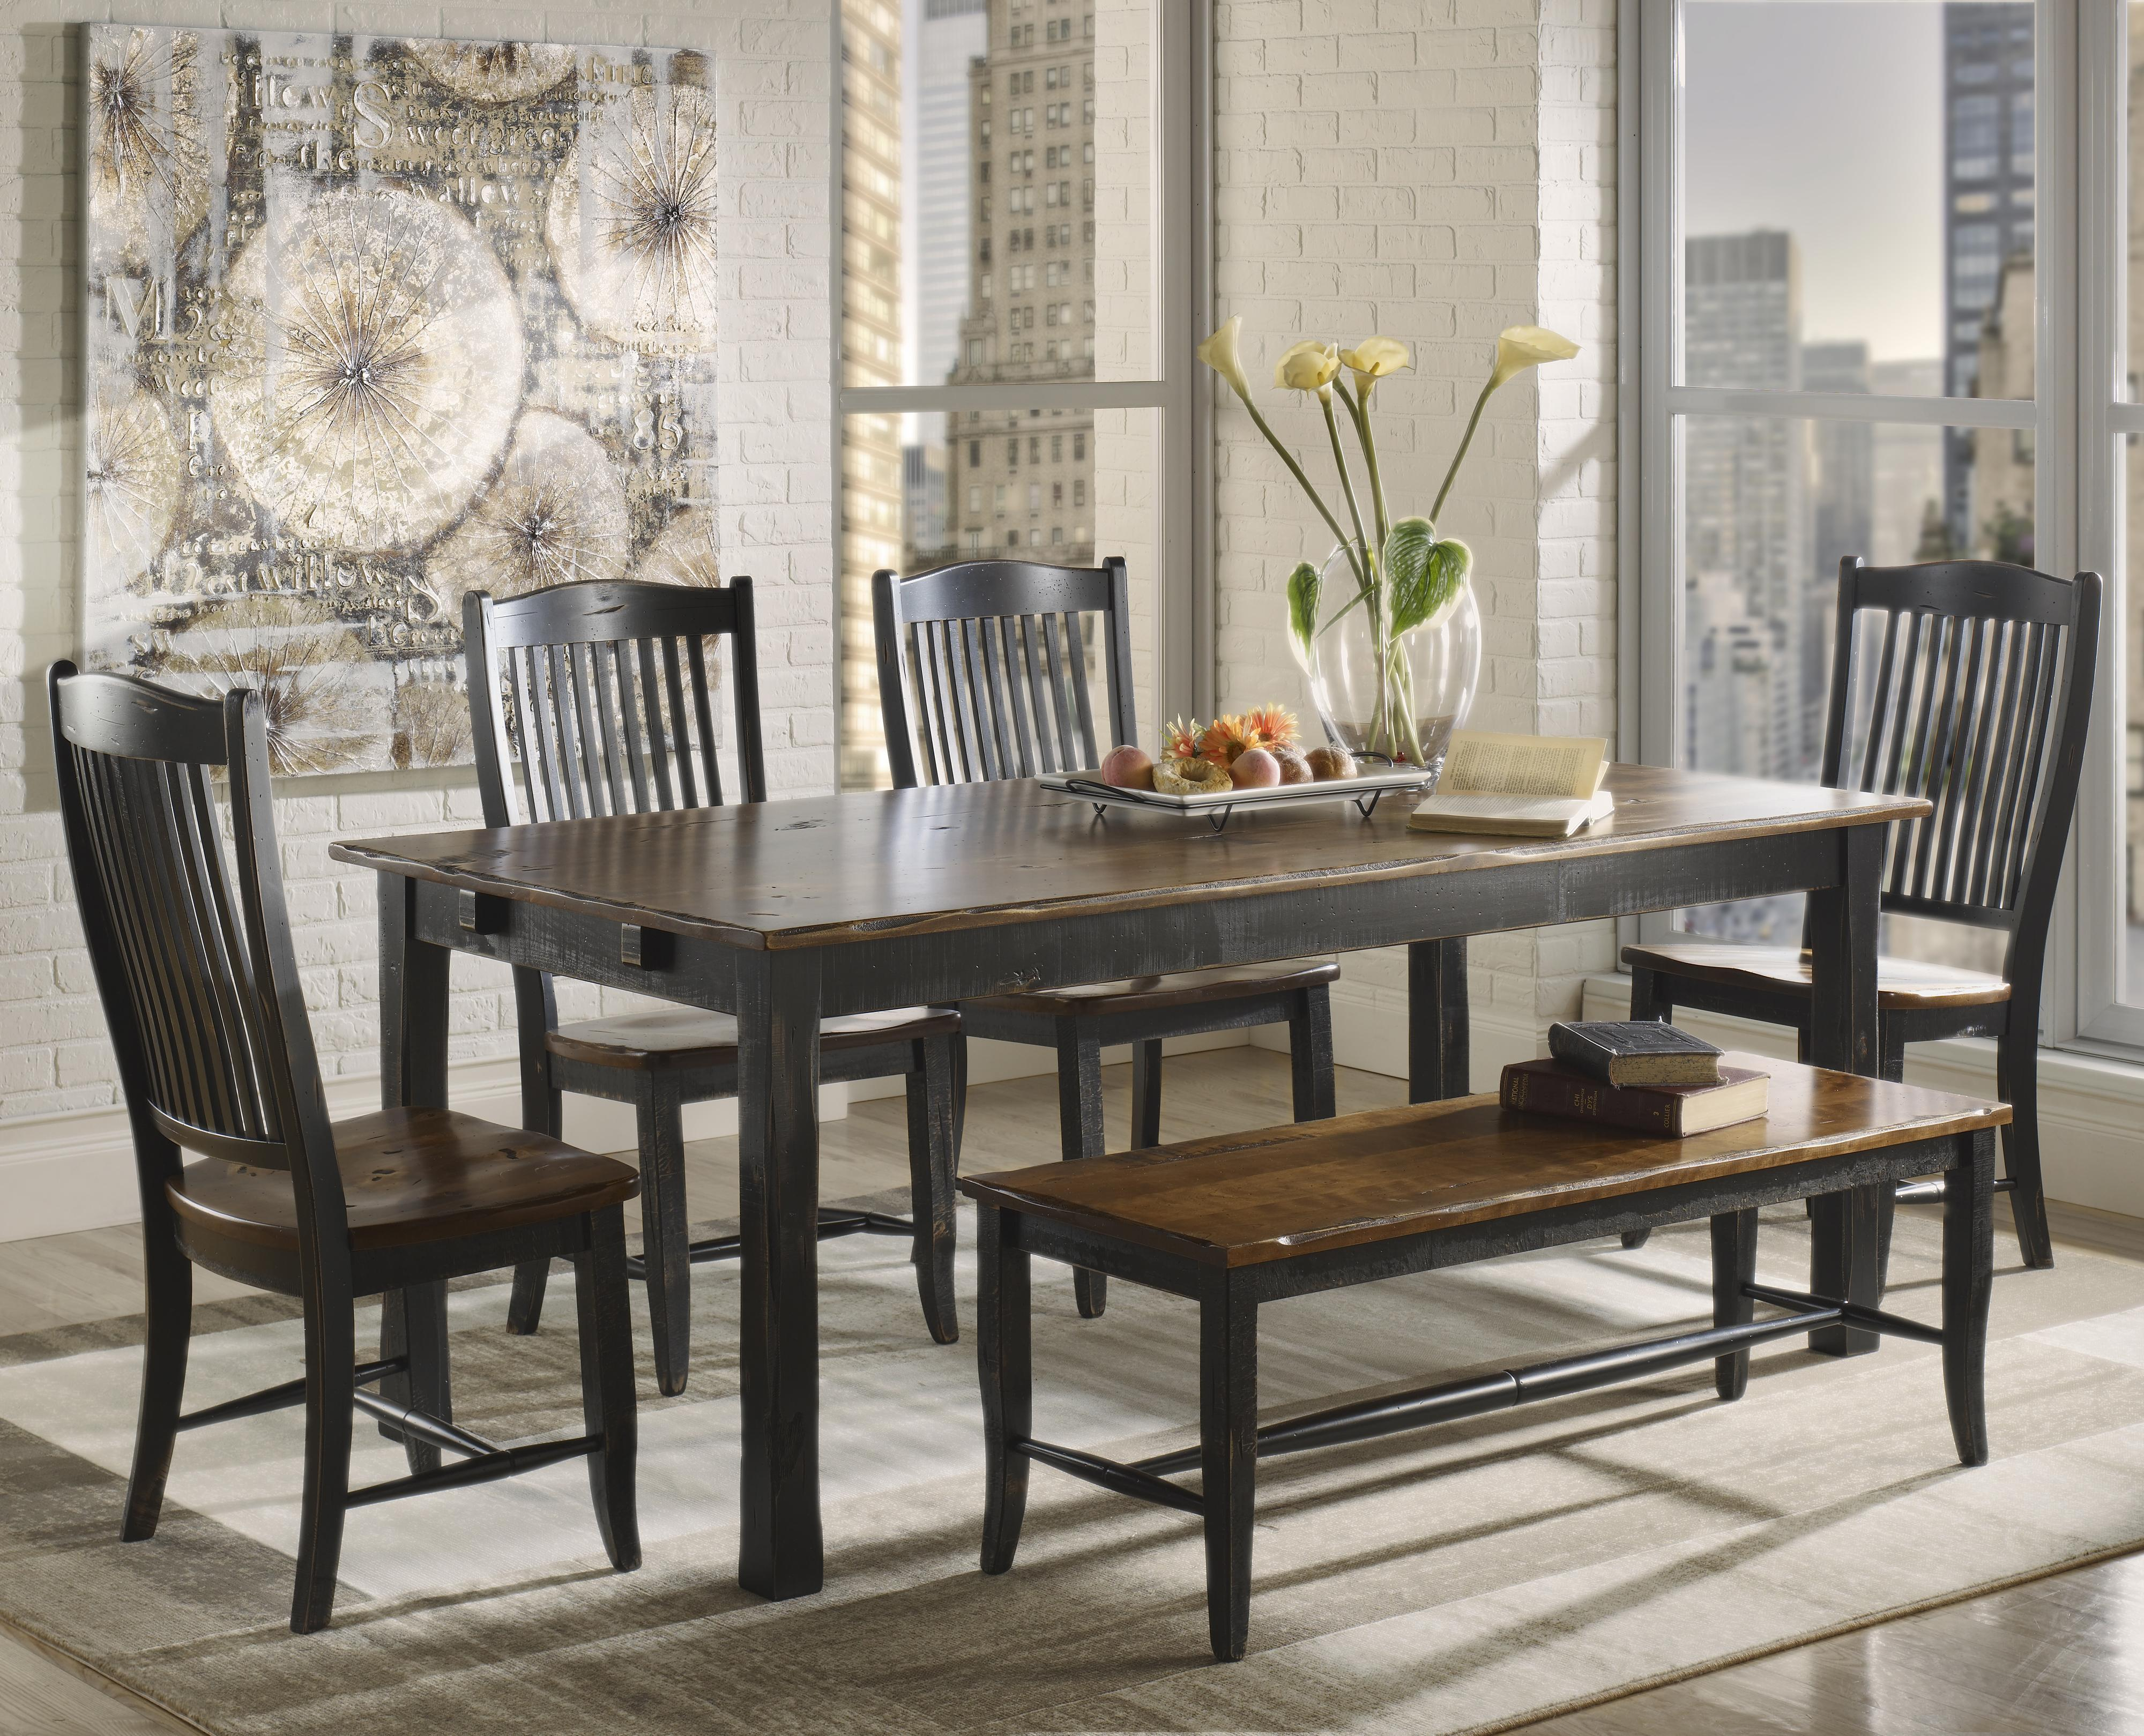 Champlain - Custom Dining <b>Customizable</b> Rectangular Table Set by Canadel at Dinette Depot